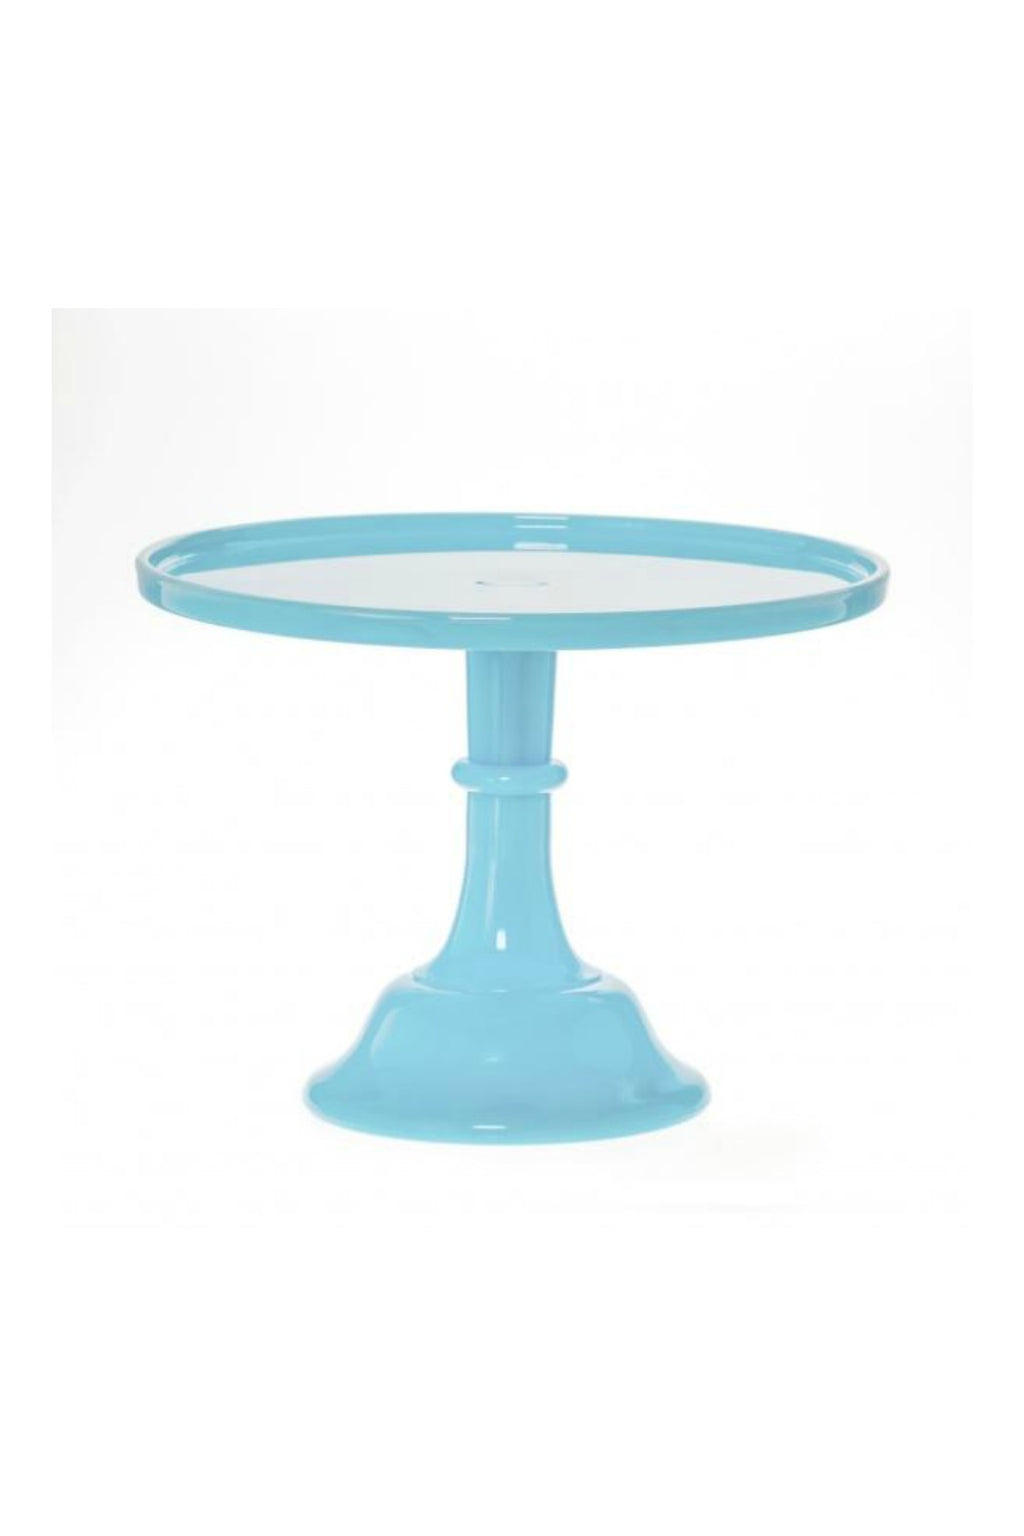 "Mosser Glass Cake 9"" Pedestal in Robins Egg"